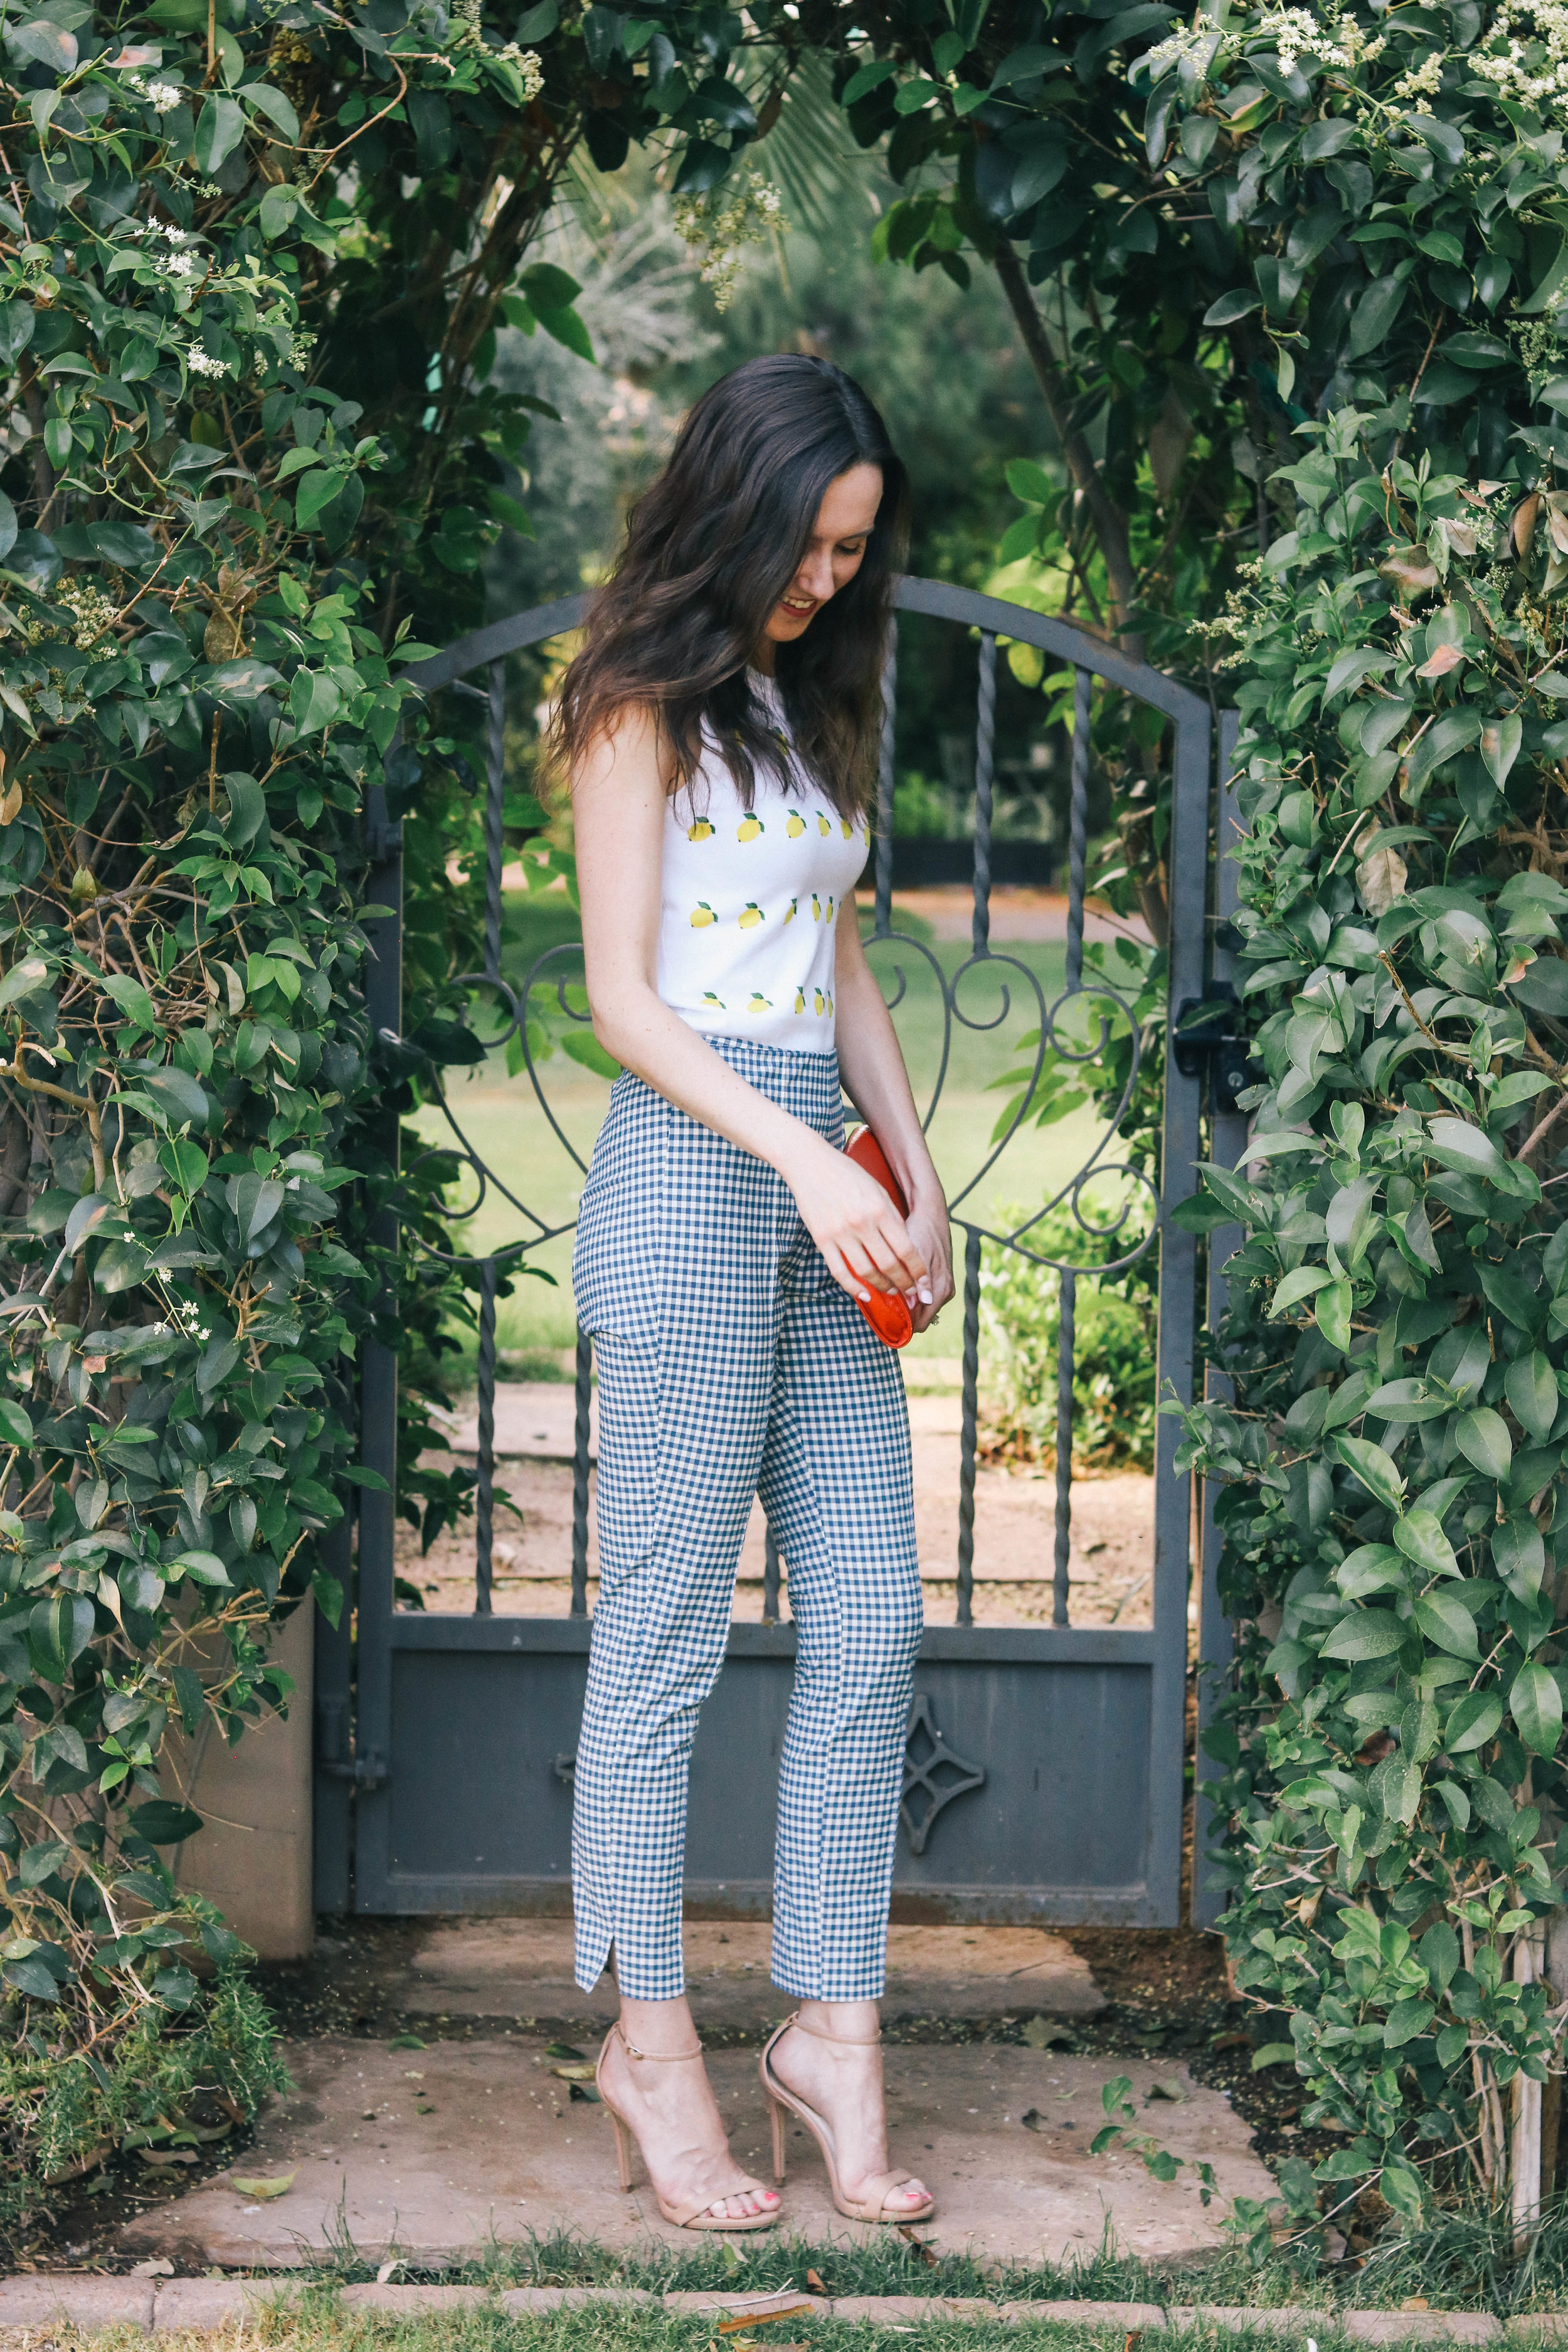 bb-summer-outfit-001 (1 of 1).jpg